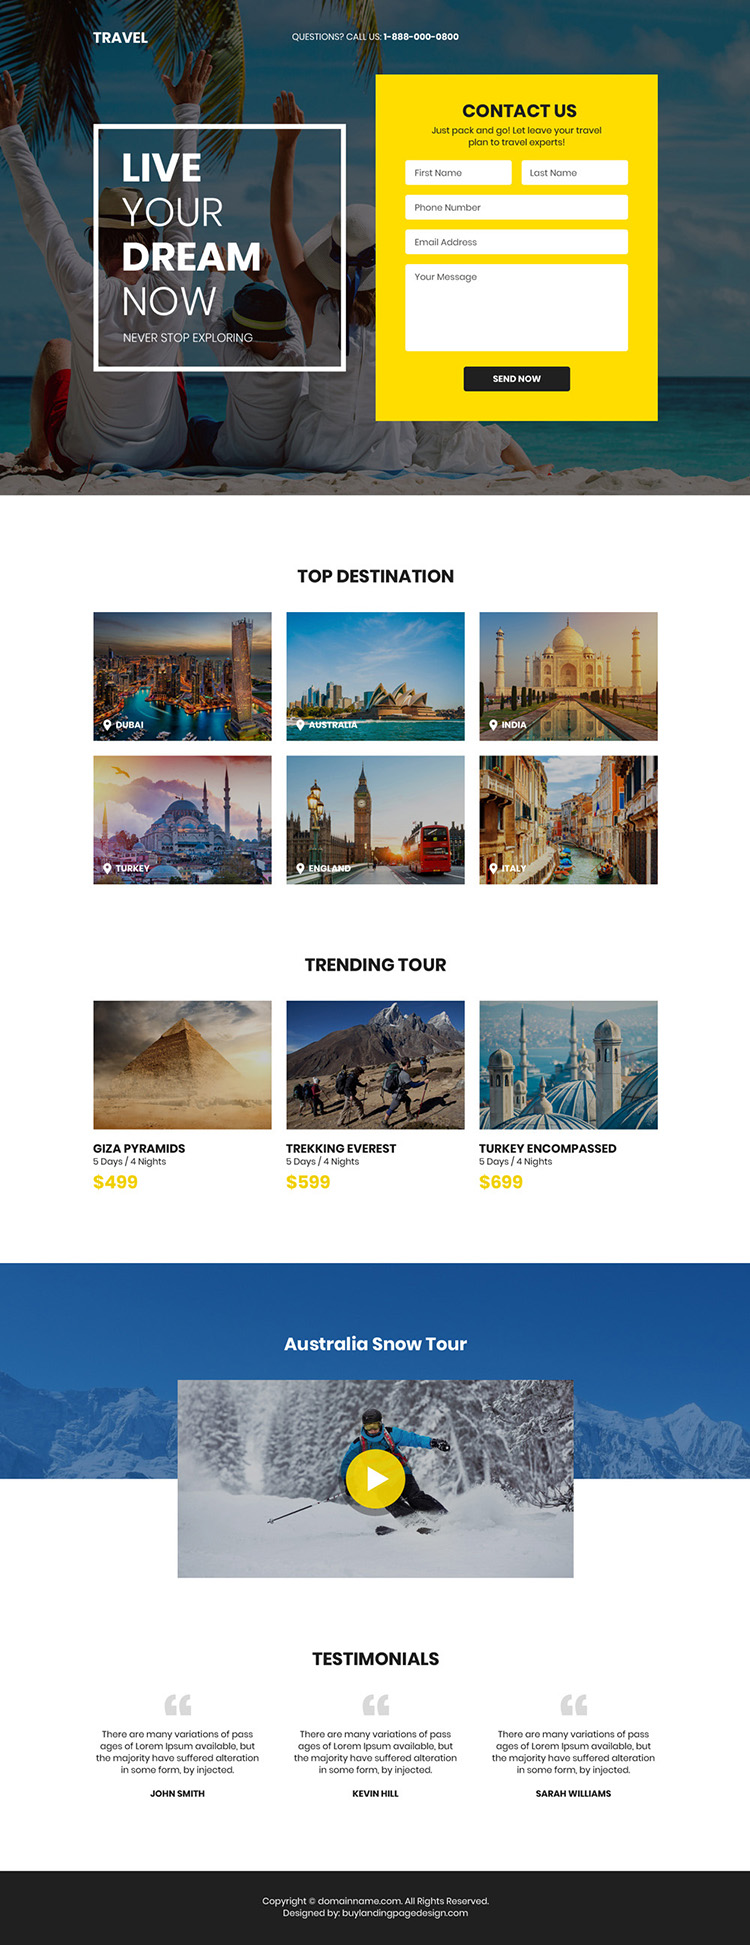 best tour and travel company lead generating landing page